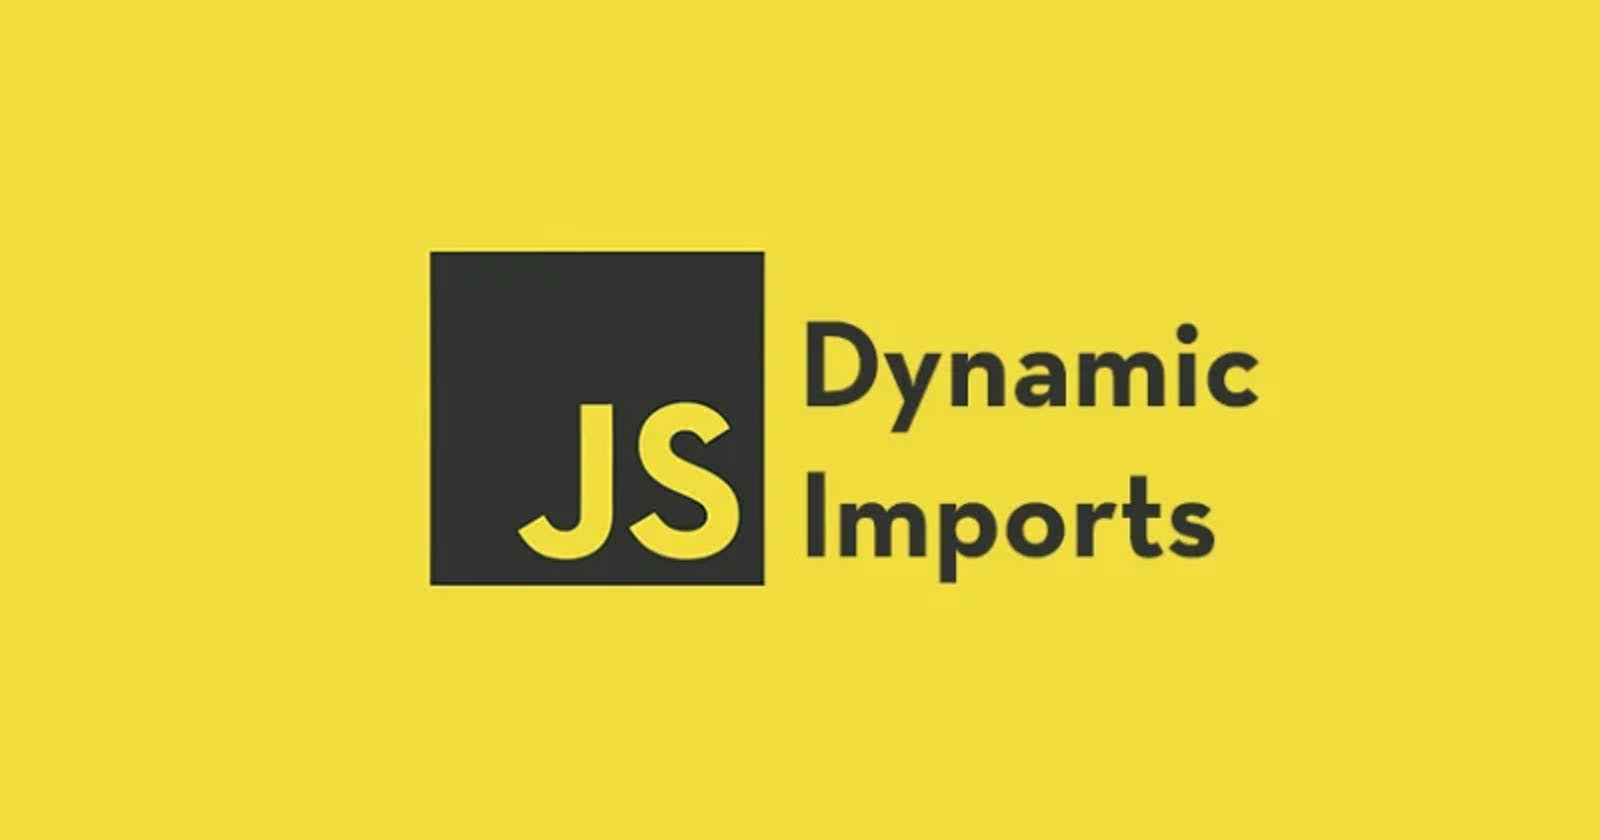 How to Use Dynamic Imports in JavaScript